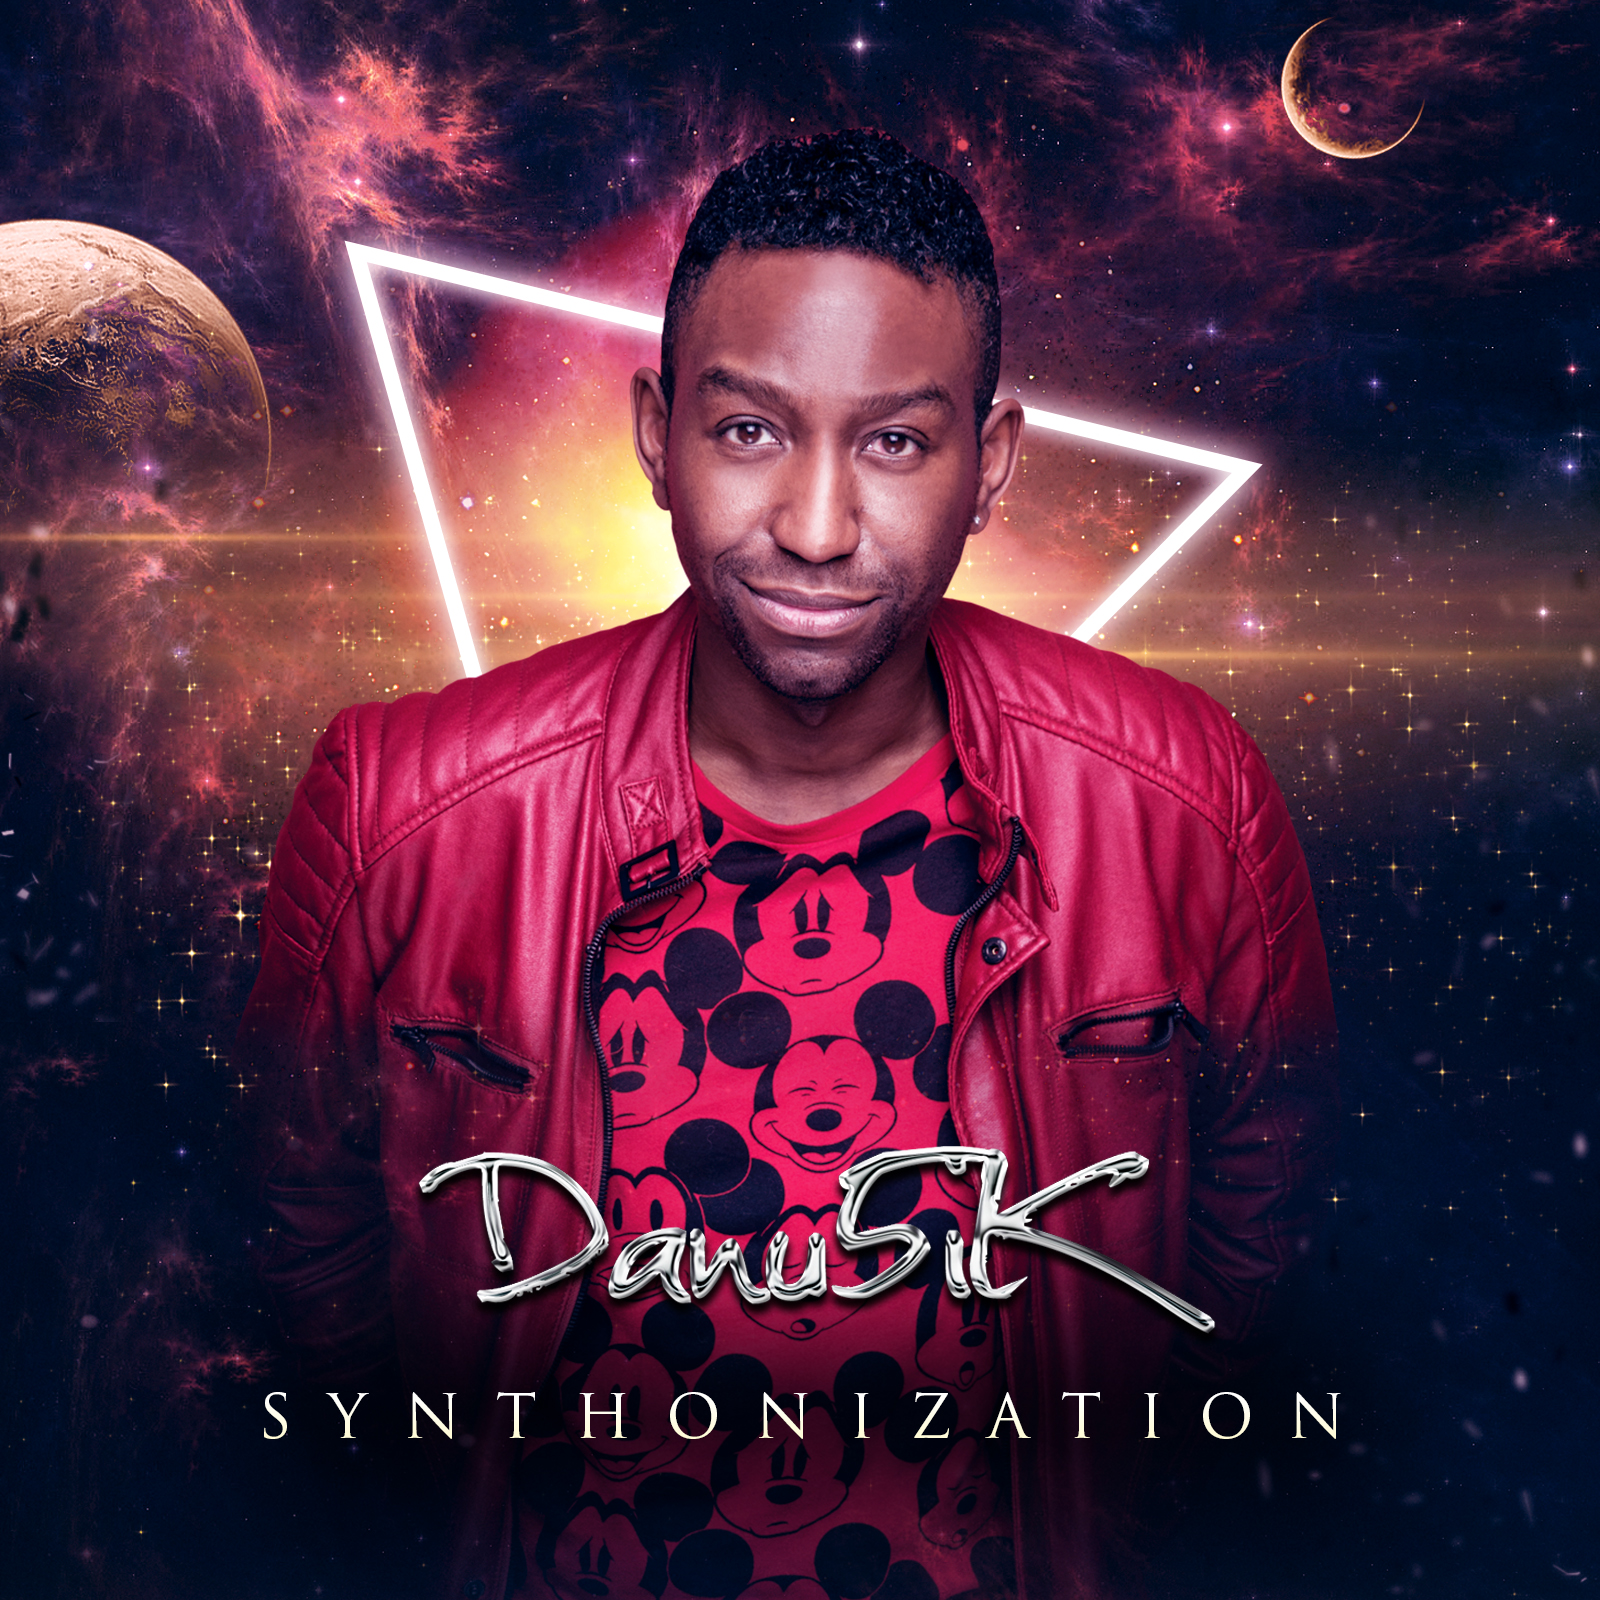 Synthonization